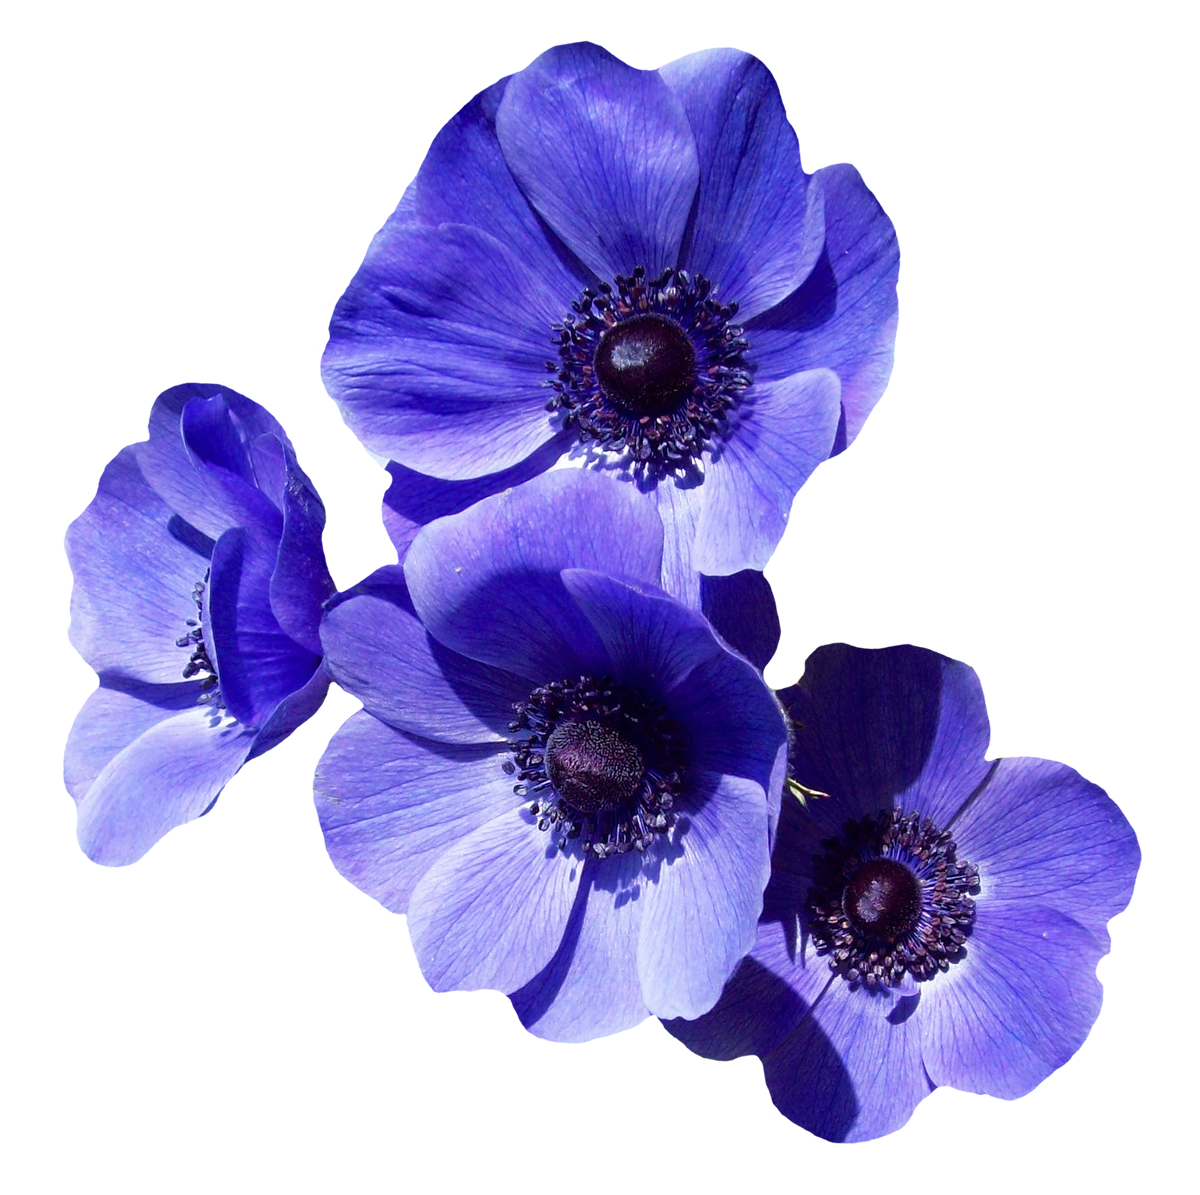 Purple Flowers PNG Image